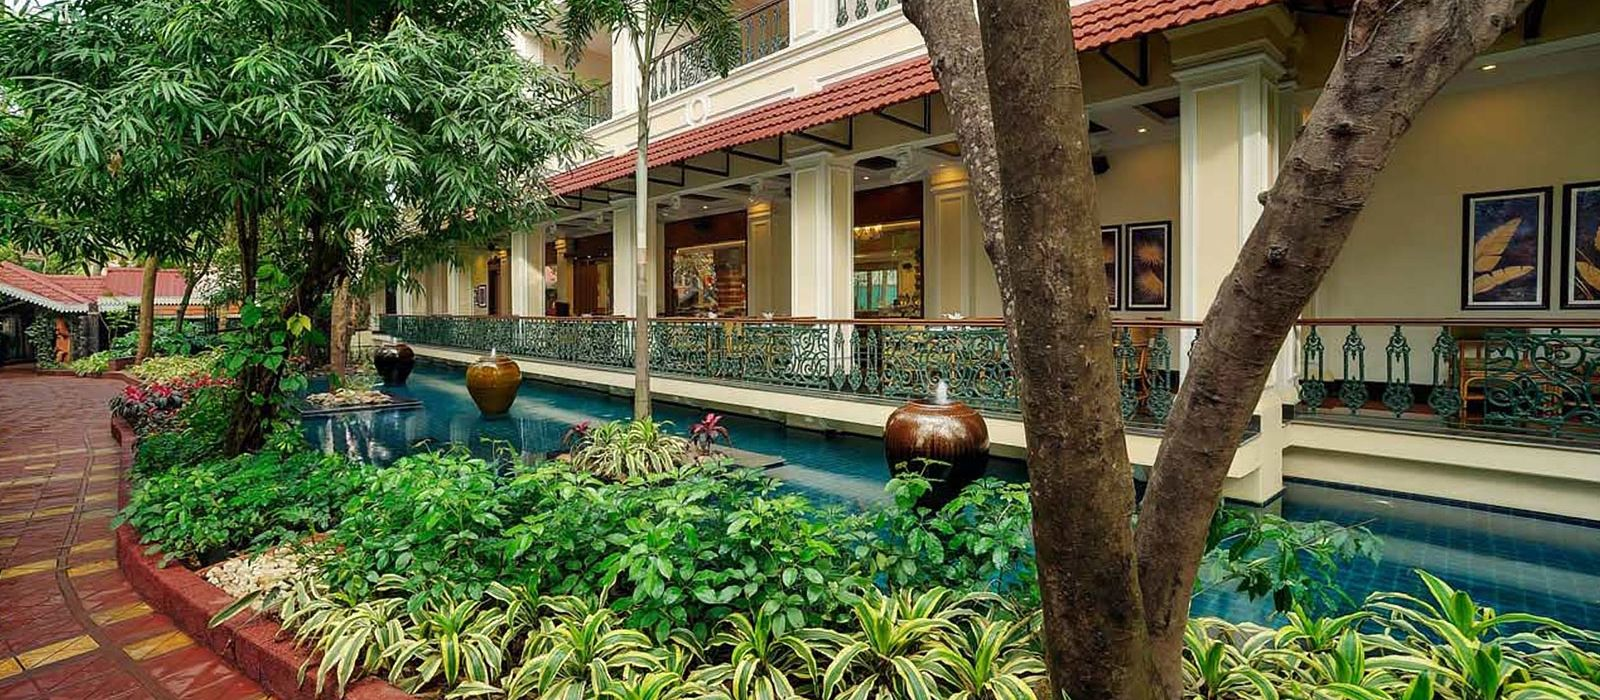 Hotel Mayfair Lagoon East India